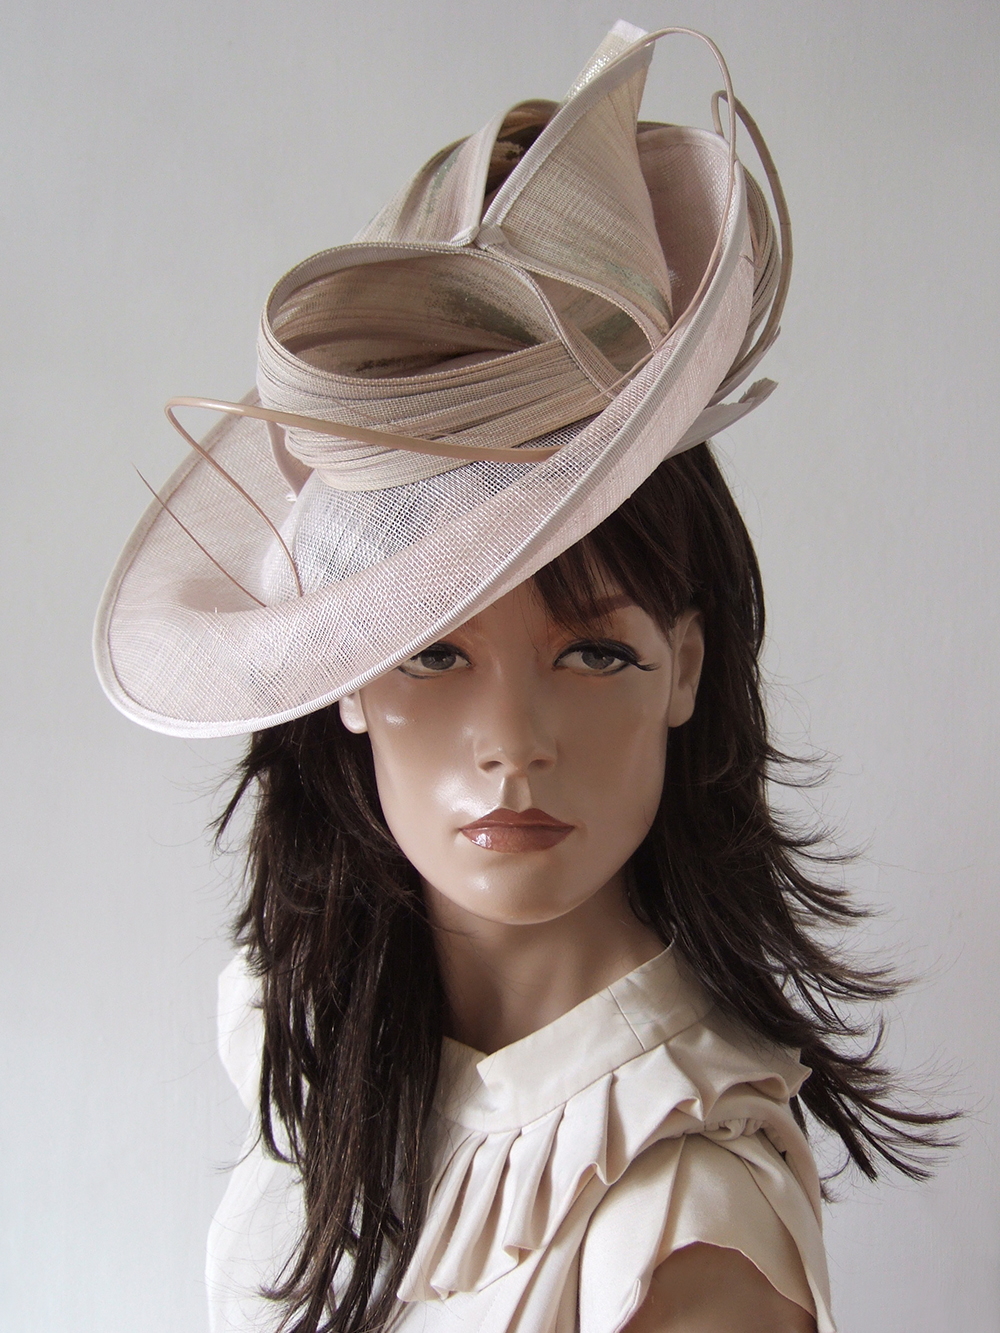 Blush Pink Hat for Royal Ascot 2021. Royal Ascot Hat Rental 2021. Hat Hire Berkshire. Amazing Royal Ascot Hats 2021. Ladies Hats for Hire 2021. Blush Pink Mother of the Bride Hats 2021. Royal Ascot Hat Rental. Formal Wedding Hats for Hire UK 2021. Vivien Sheriff Occasion Hats 2021.